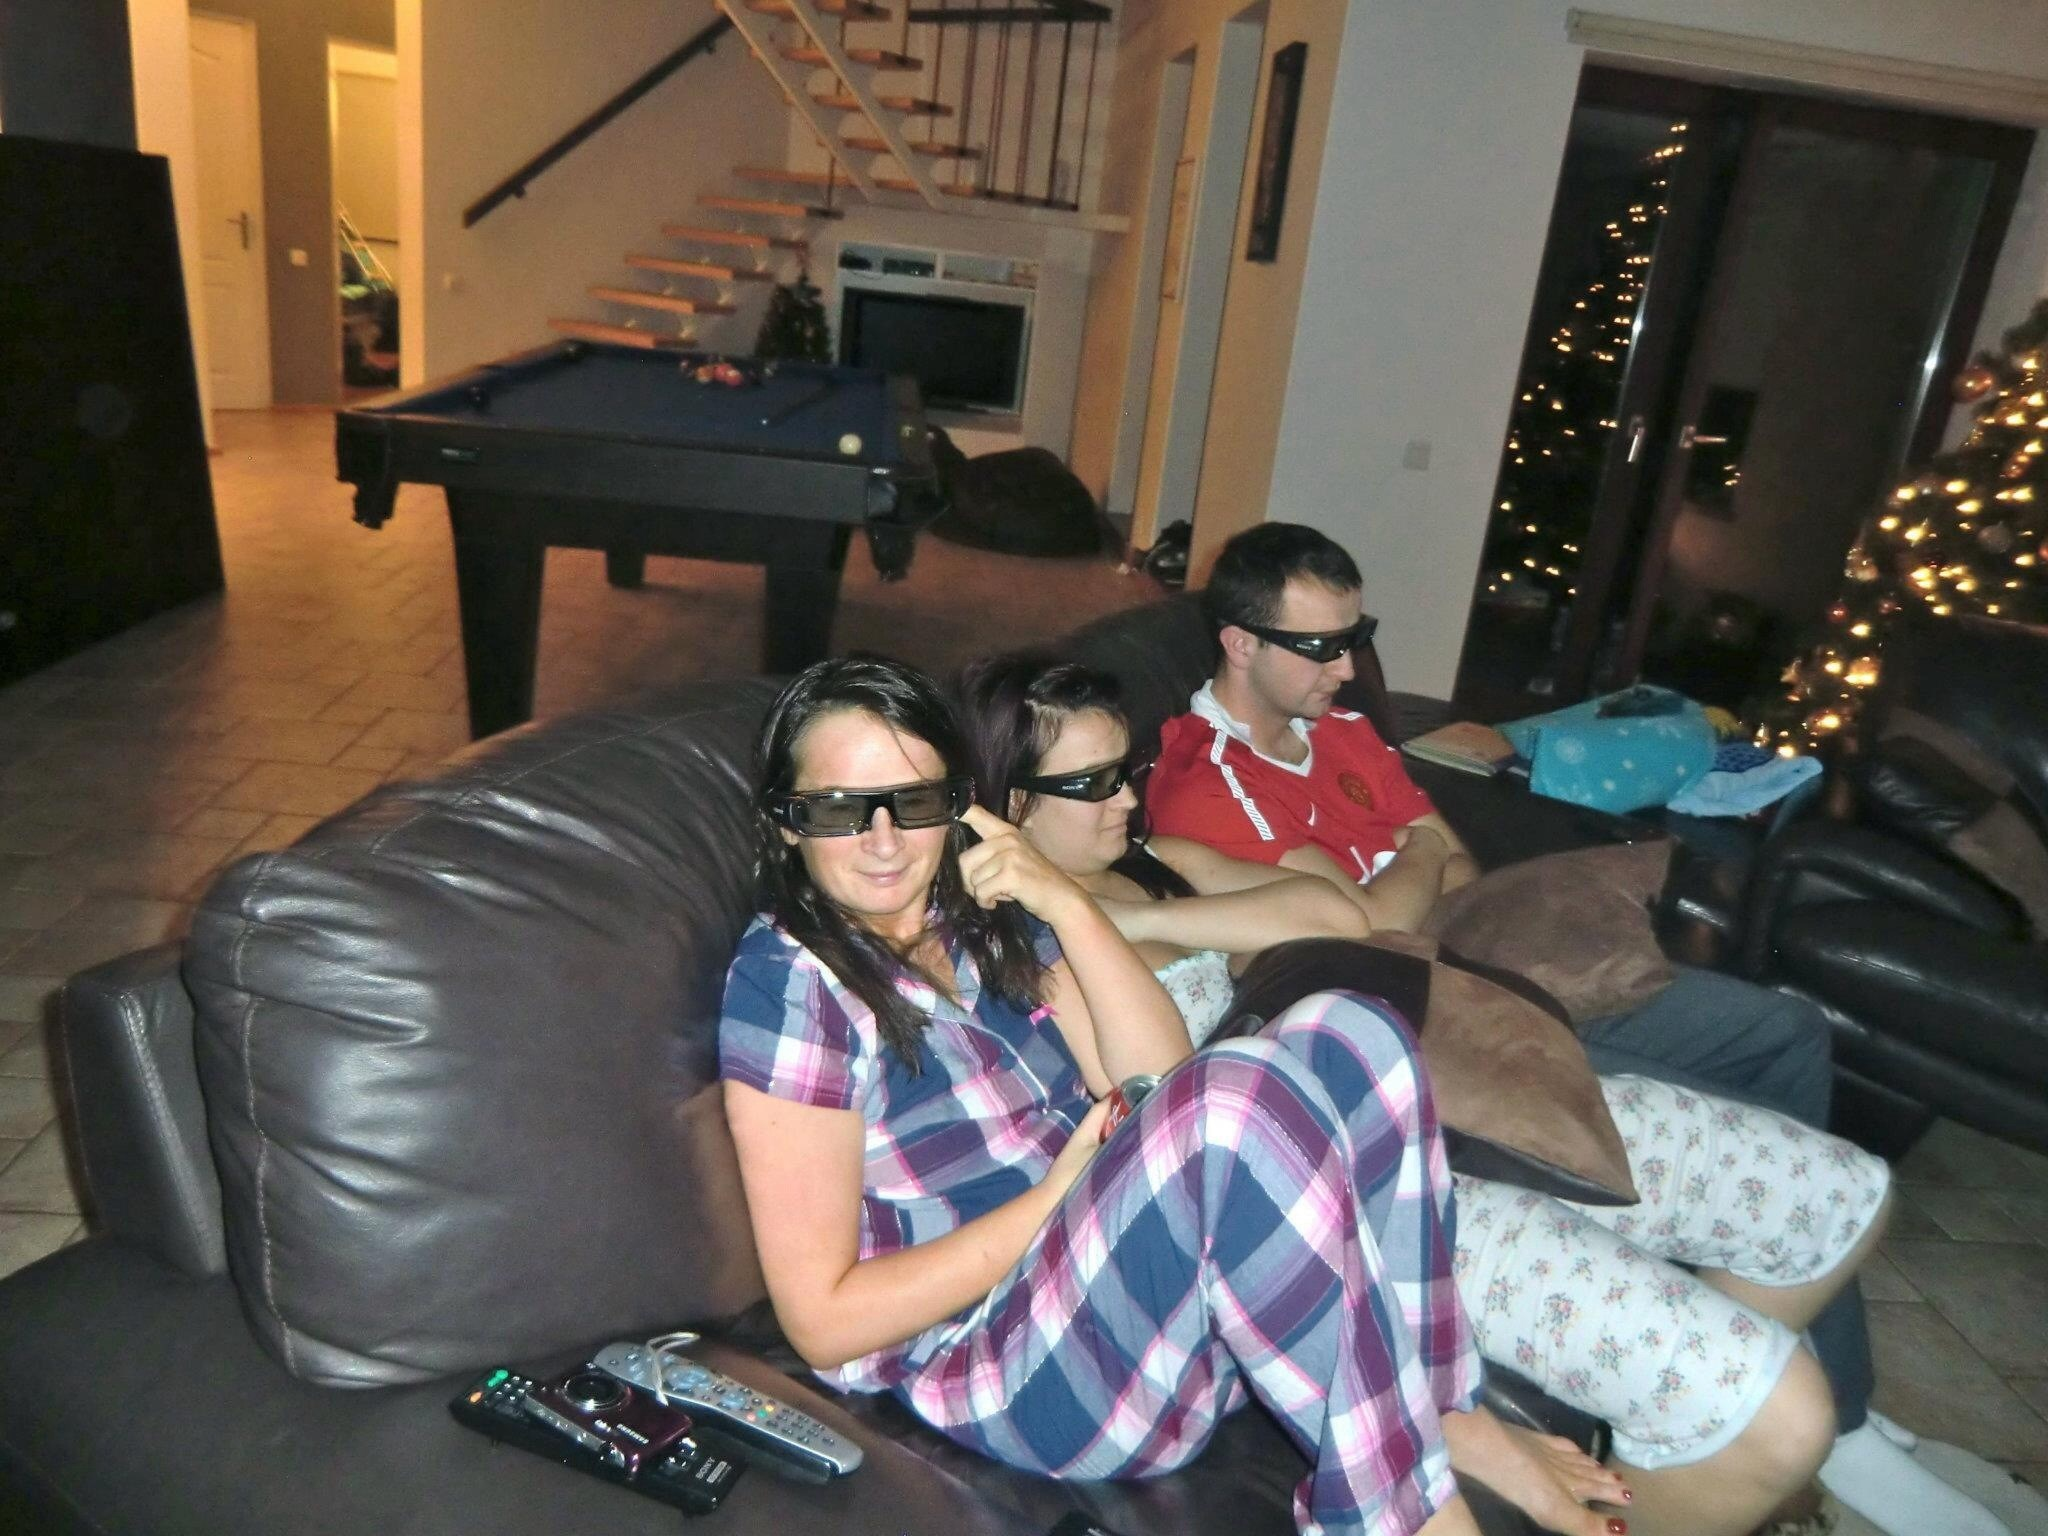 Watching 3d smurfs. Quality family time. We'll seen Michelle is in middle of us two Hee Hee